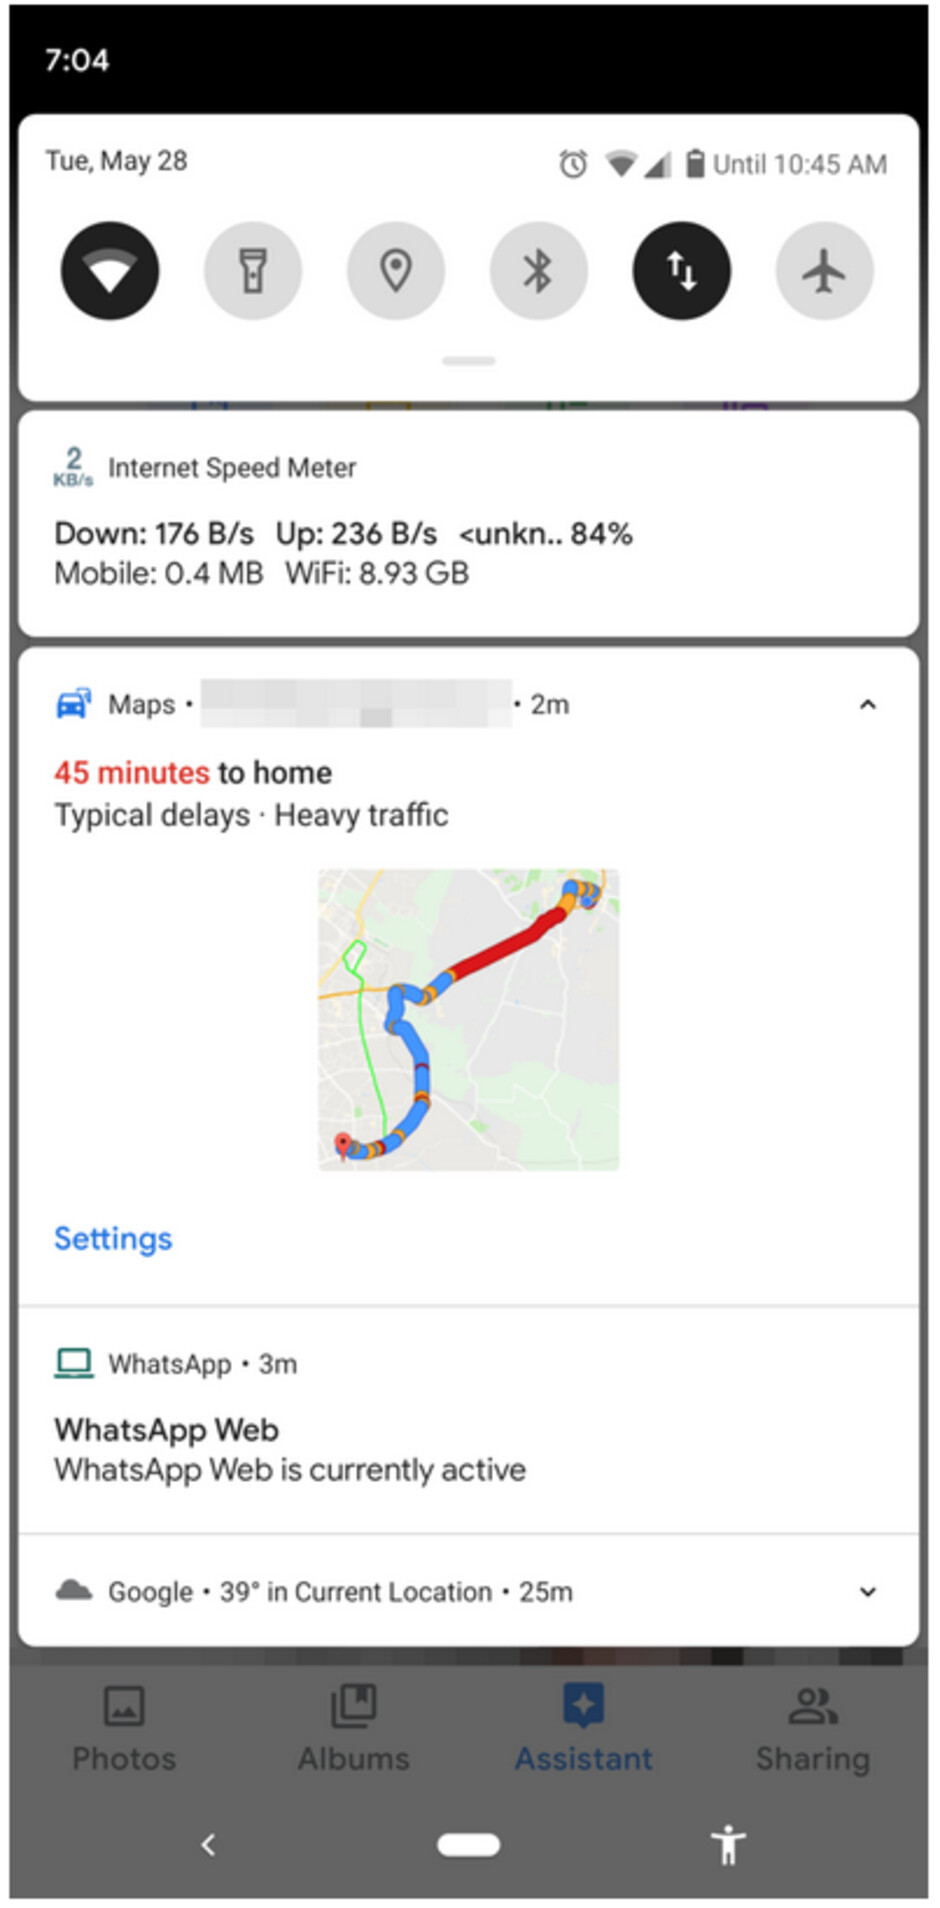 Google Maps now provides commuters with a preview of their trip before leaving to and from work - Google Maps now allows commuters to see a preview of their drive to and from work